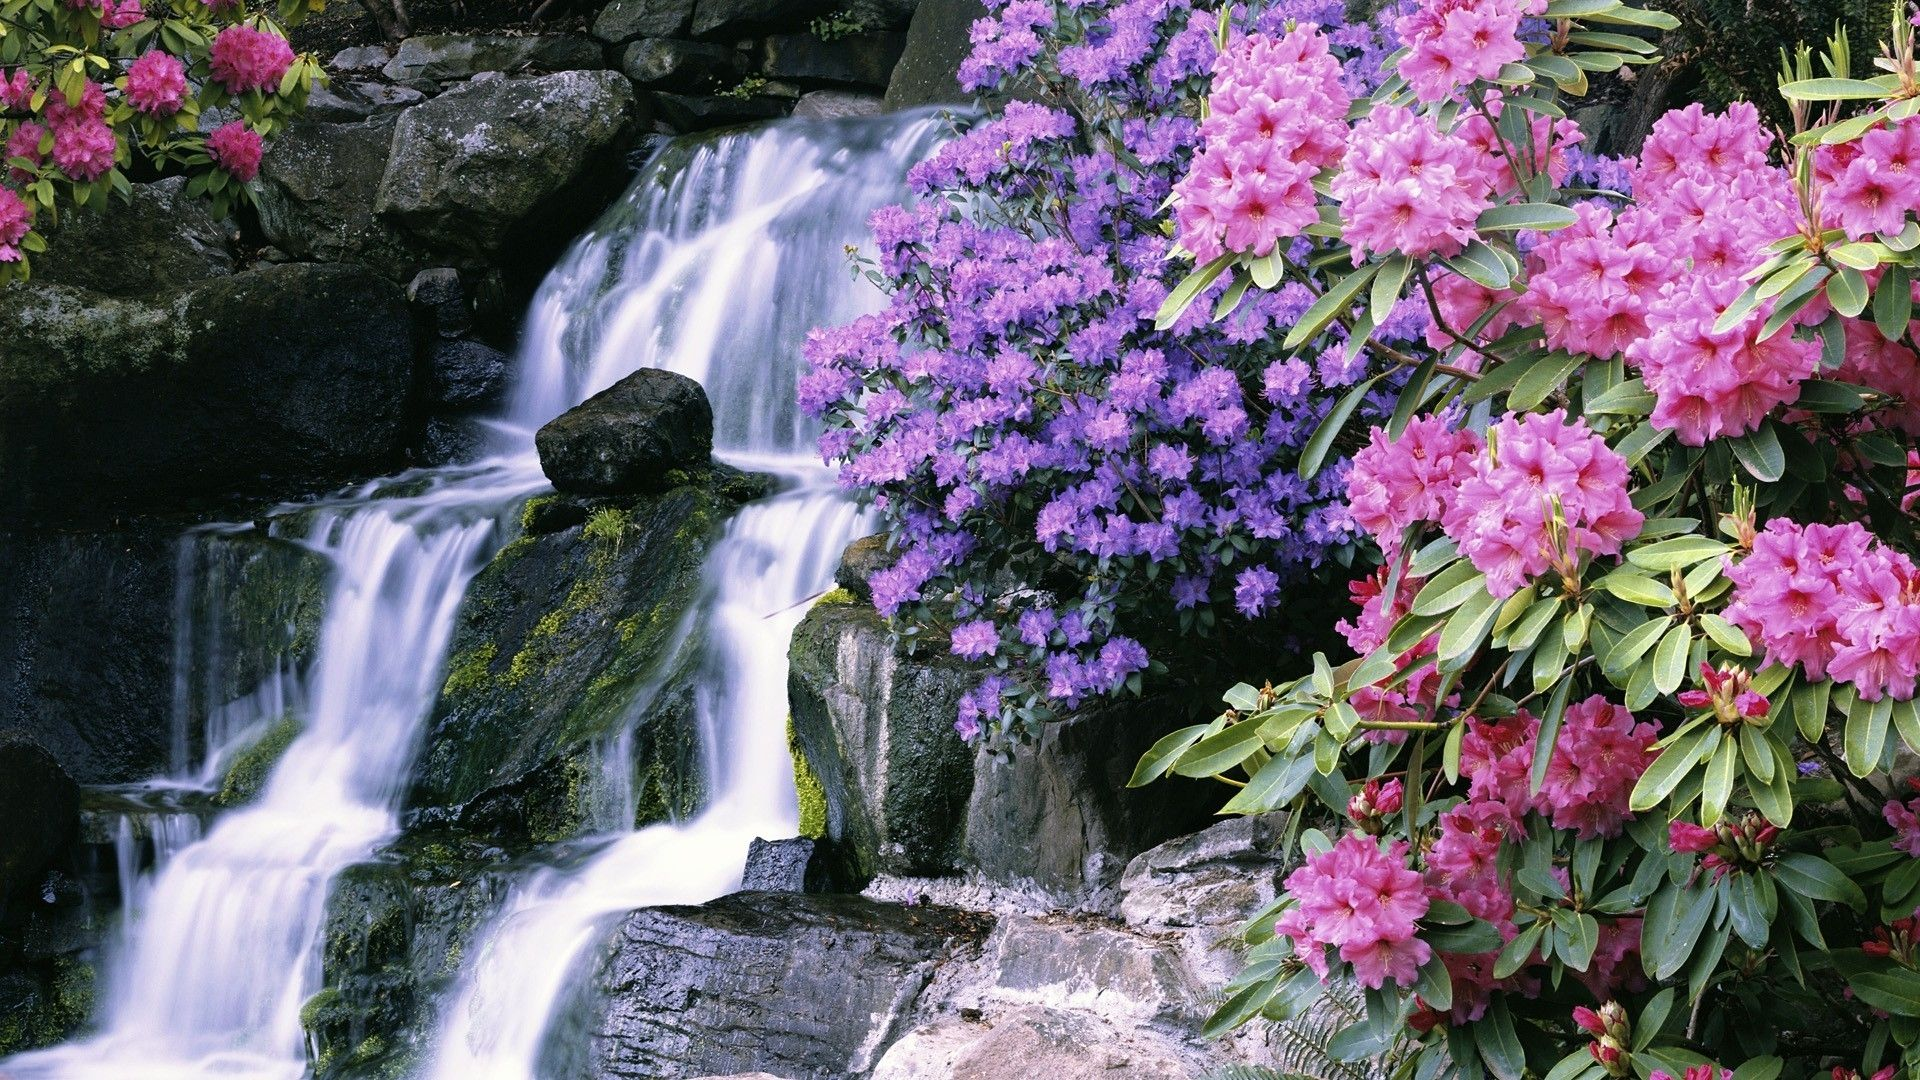 Most Beautiful Waterfalls With Flowers Download 1920x1080 Flowers Garden Crystals Oregon Portland Waterfalls Waterfall Spring Garden Lovely Flowers Wallpaper